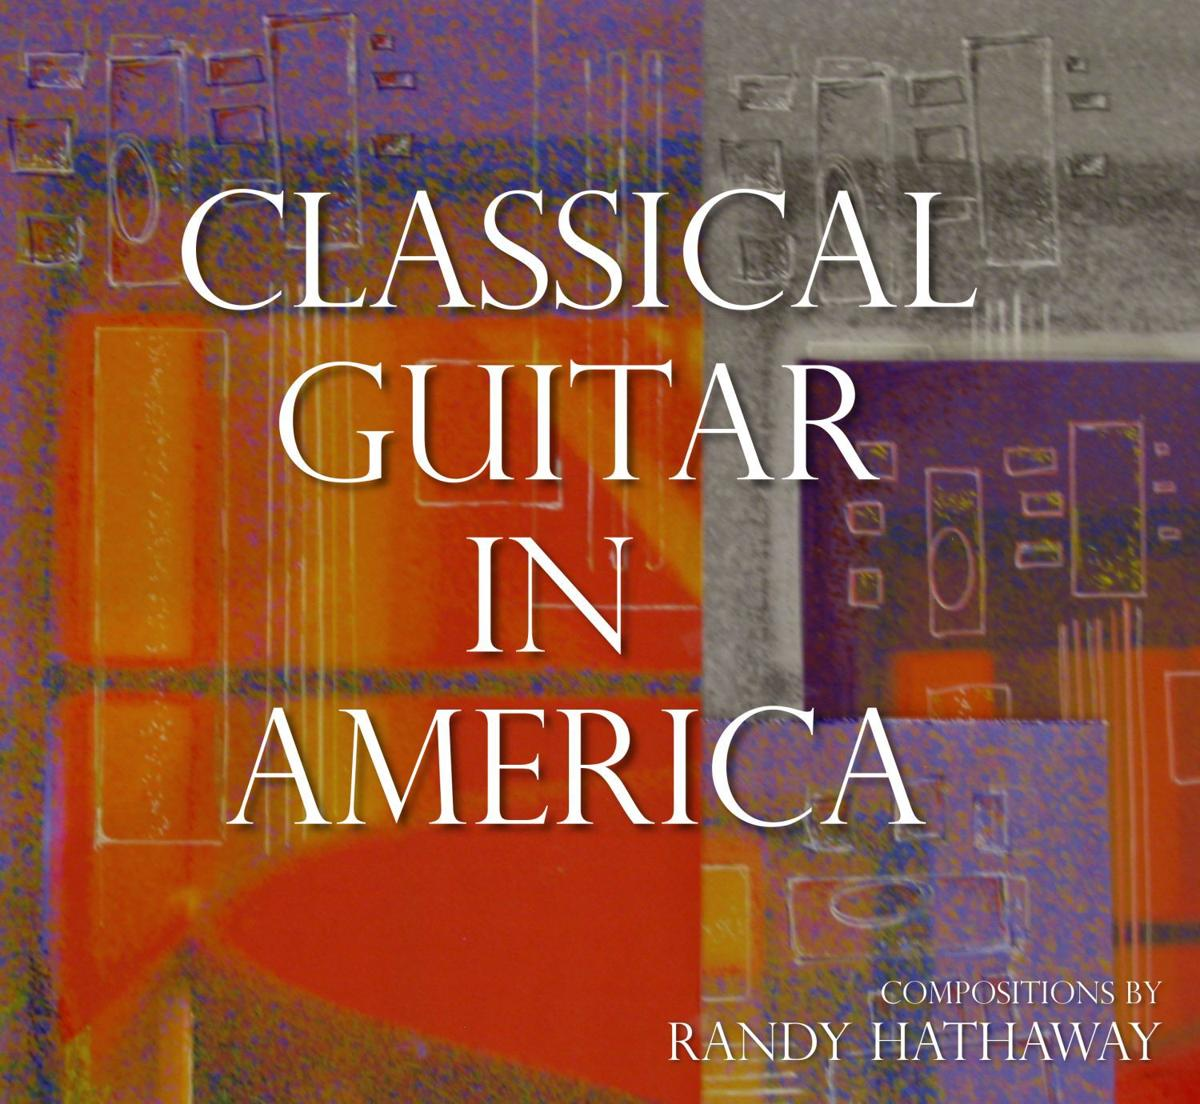 Randy Hathaway cd cover